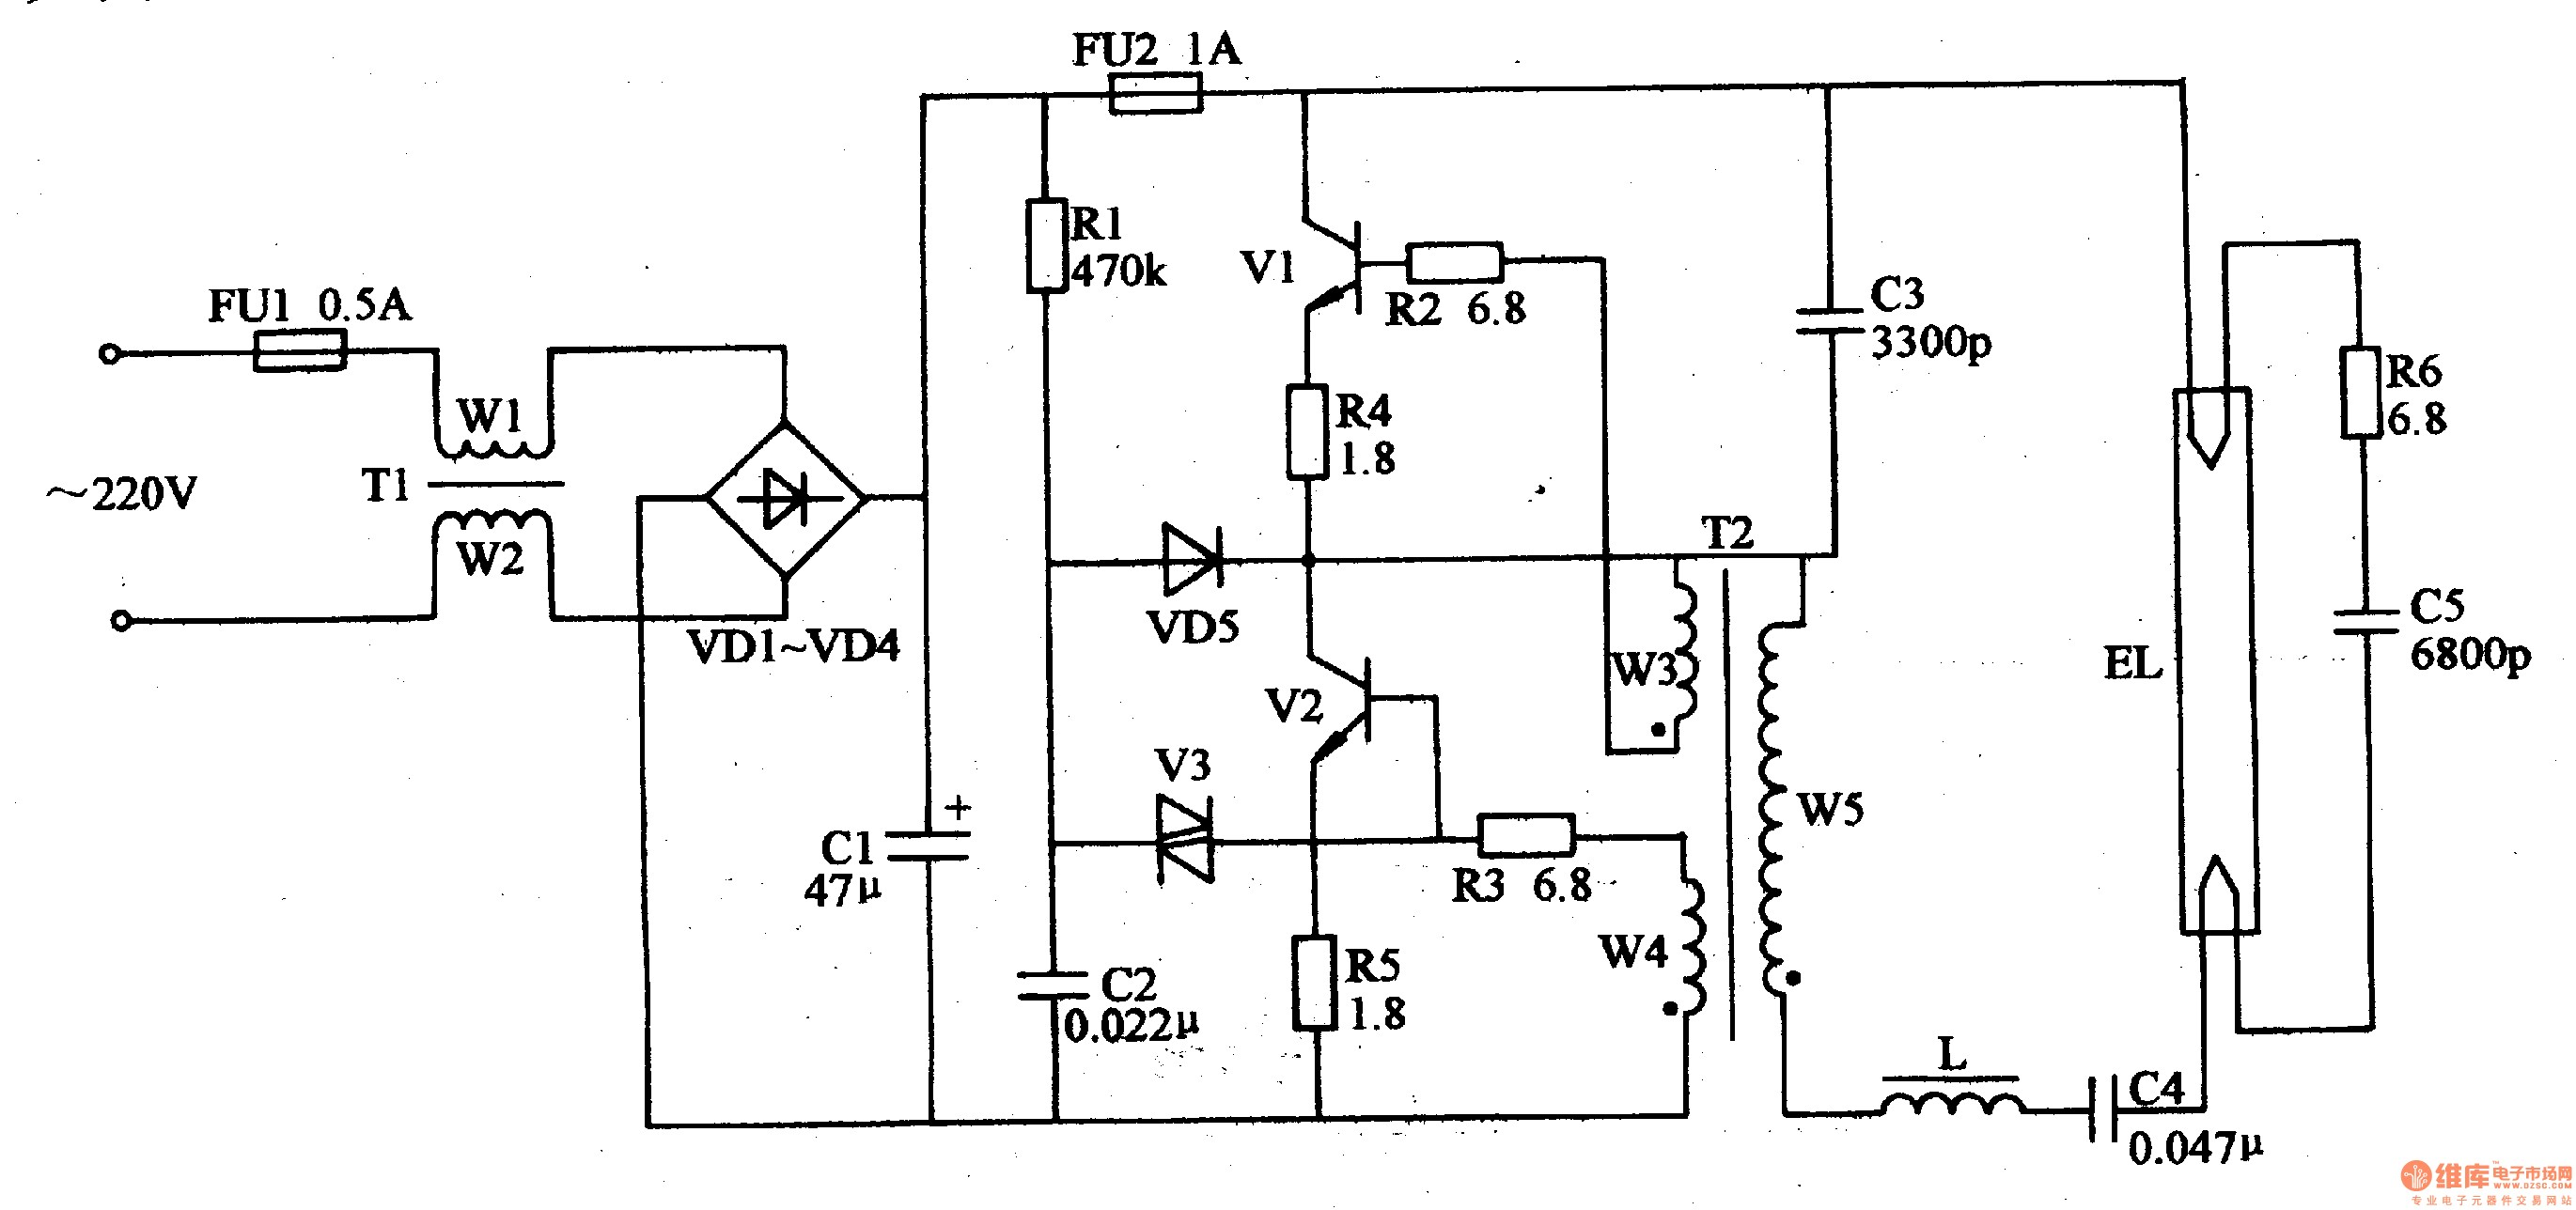 High Pressure sodium Ballast Wiring Diagram Electronic